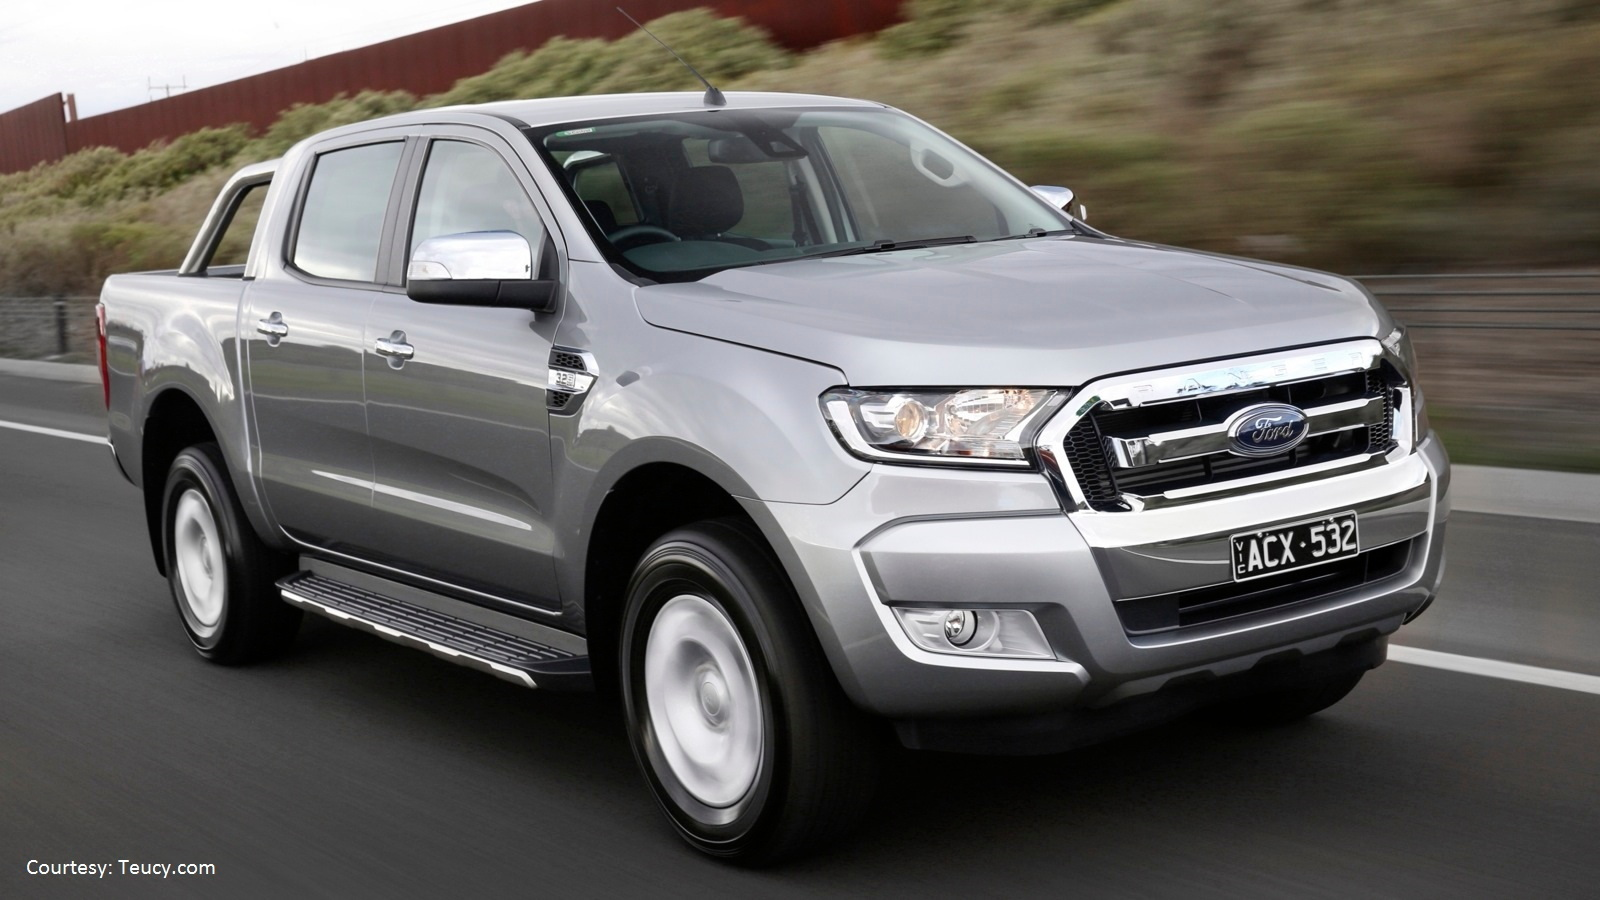 The Ranger Will Hit Production in 2018 or 2019